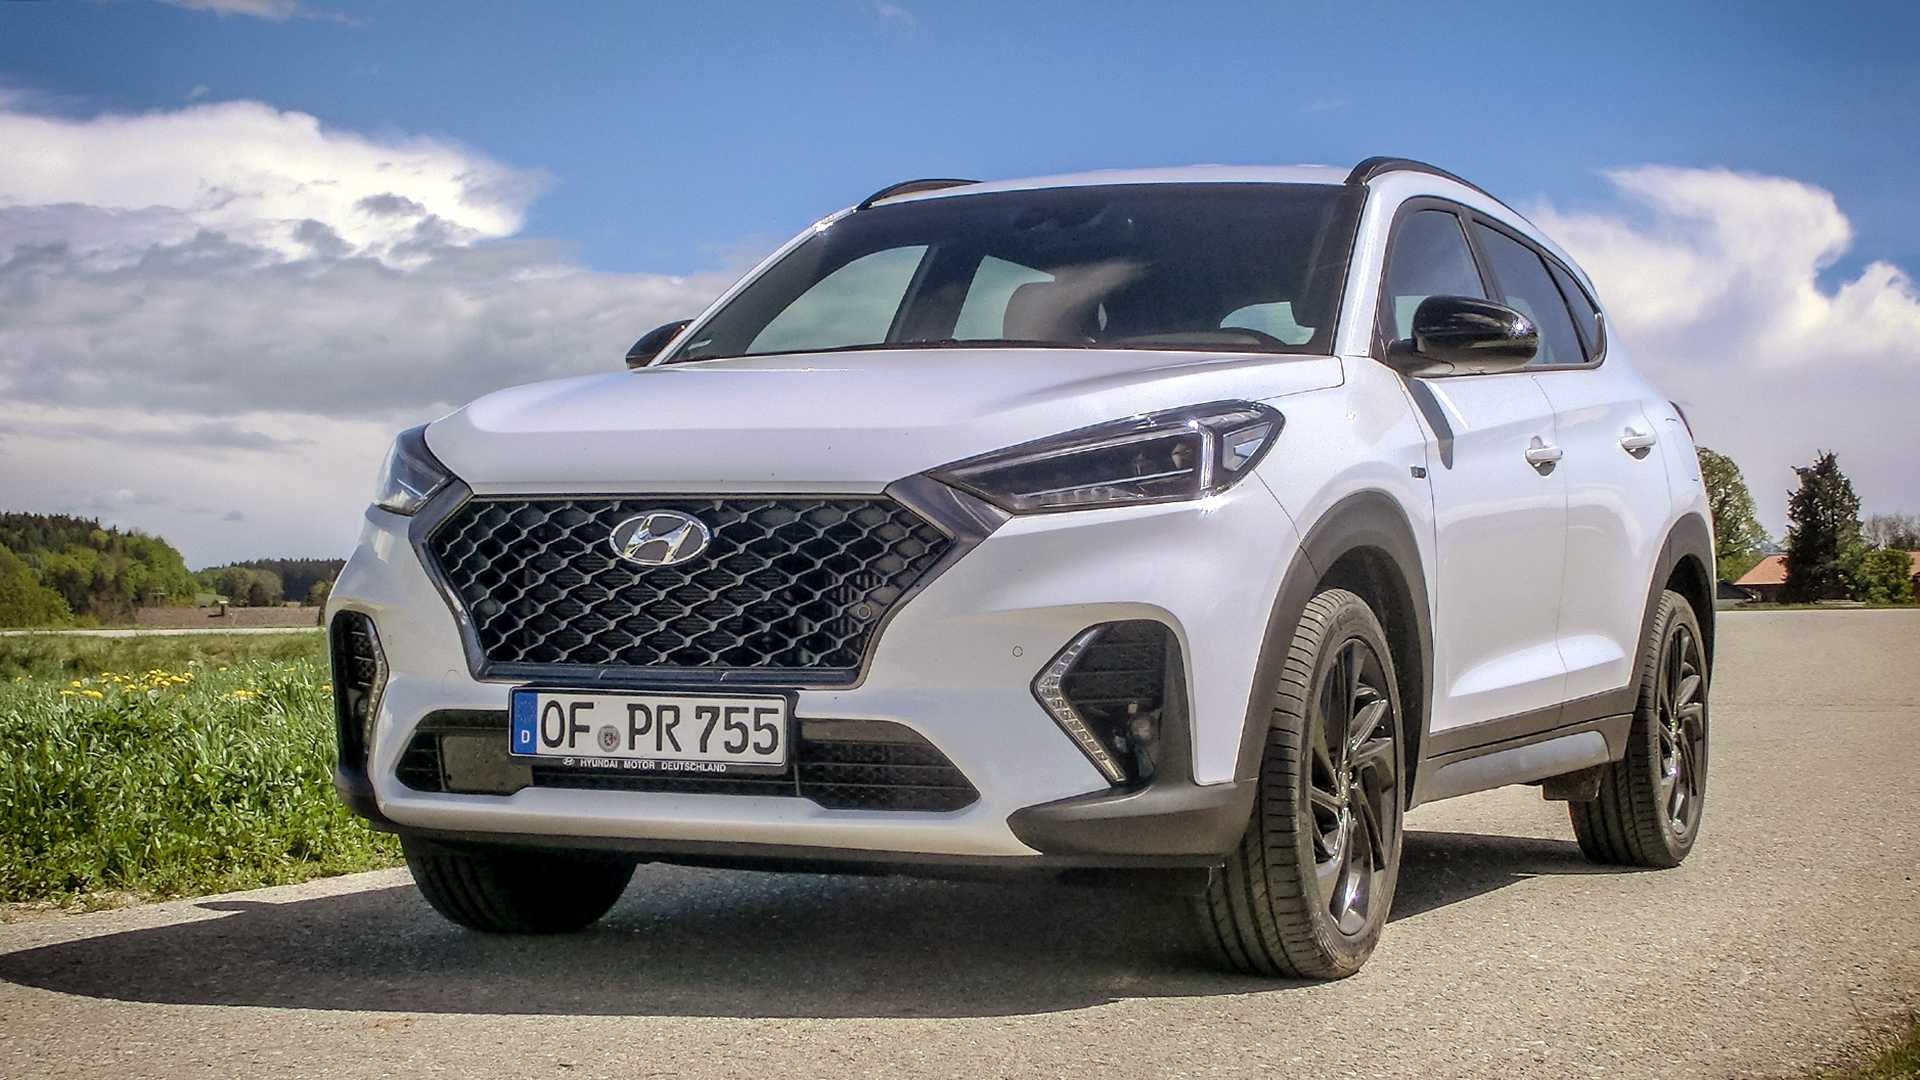 83 The Best 2019 Hyundai Tucson Redesign And Concept